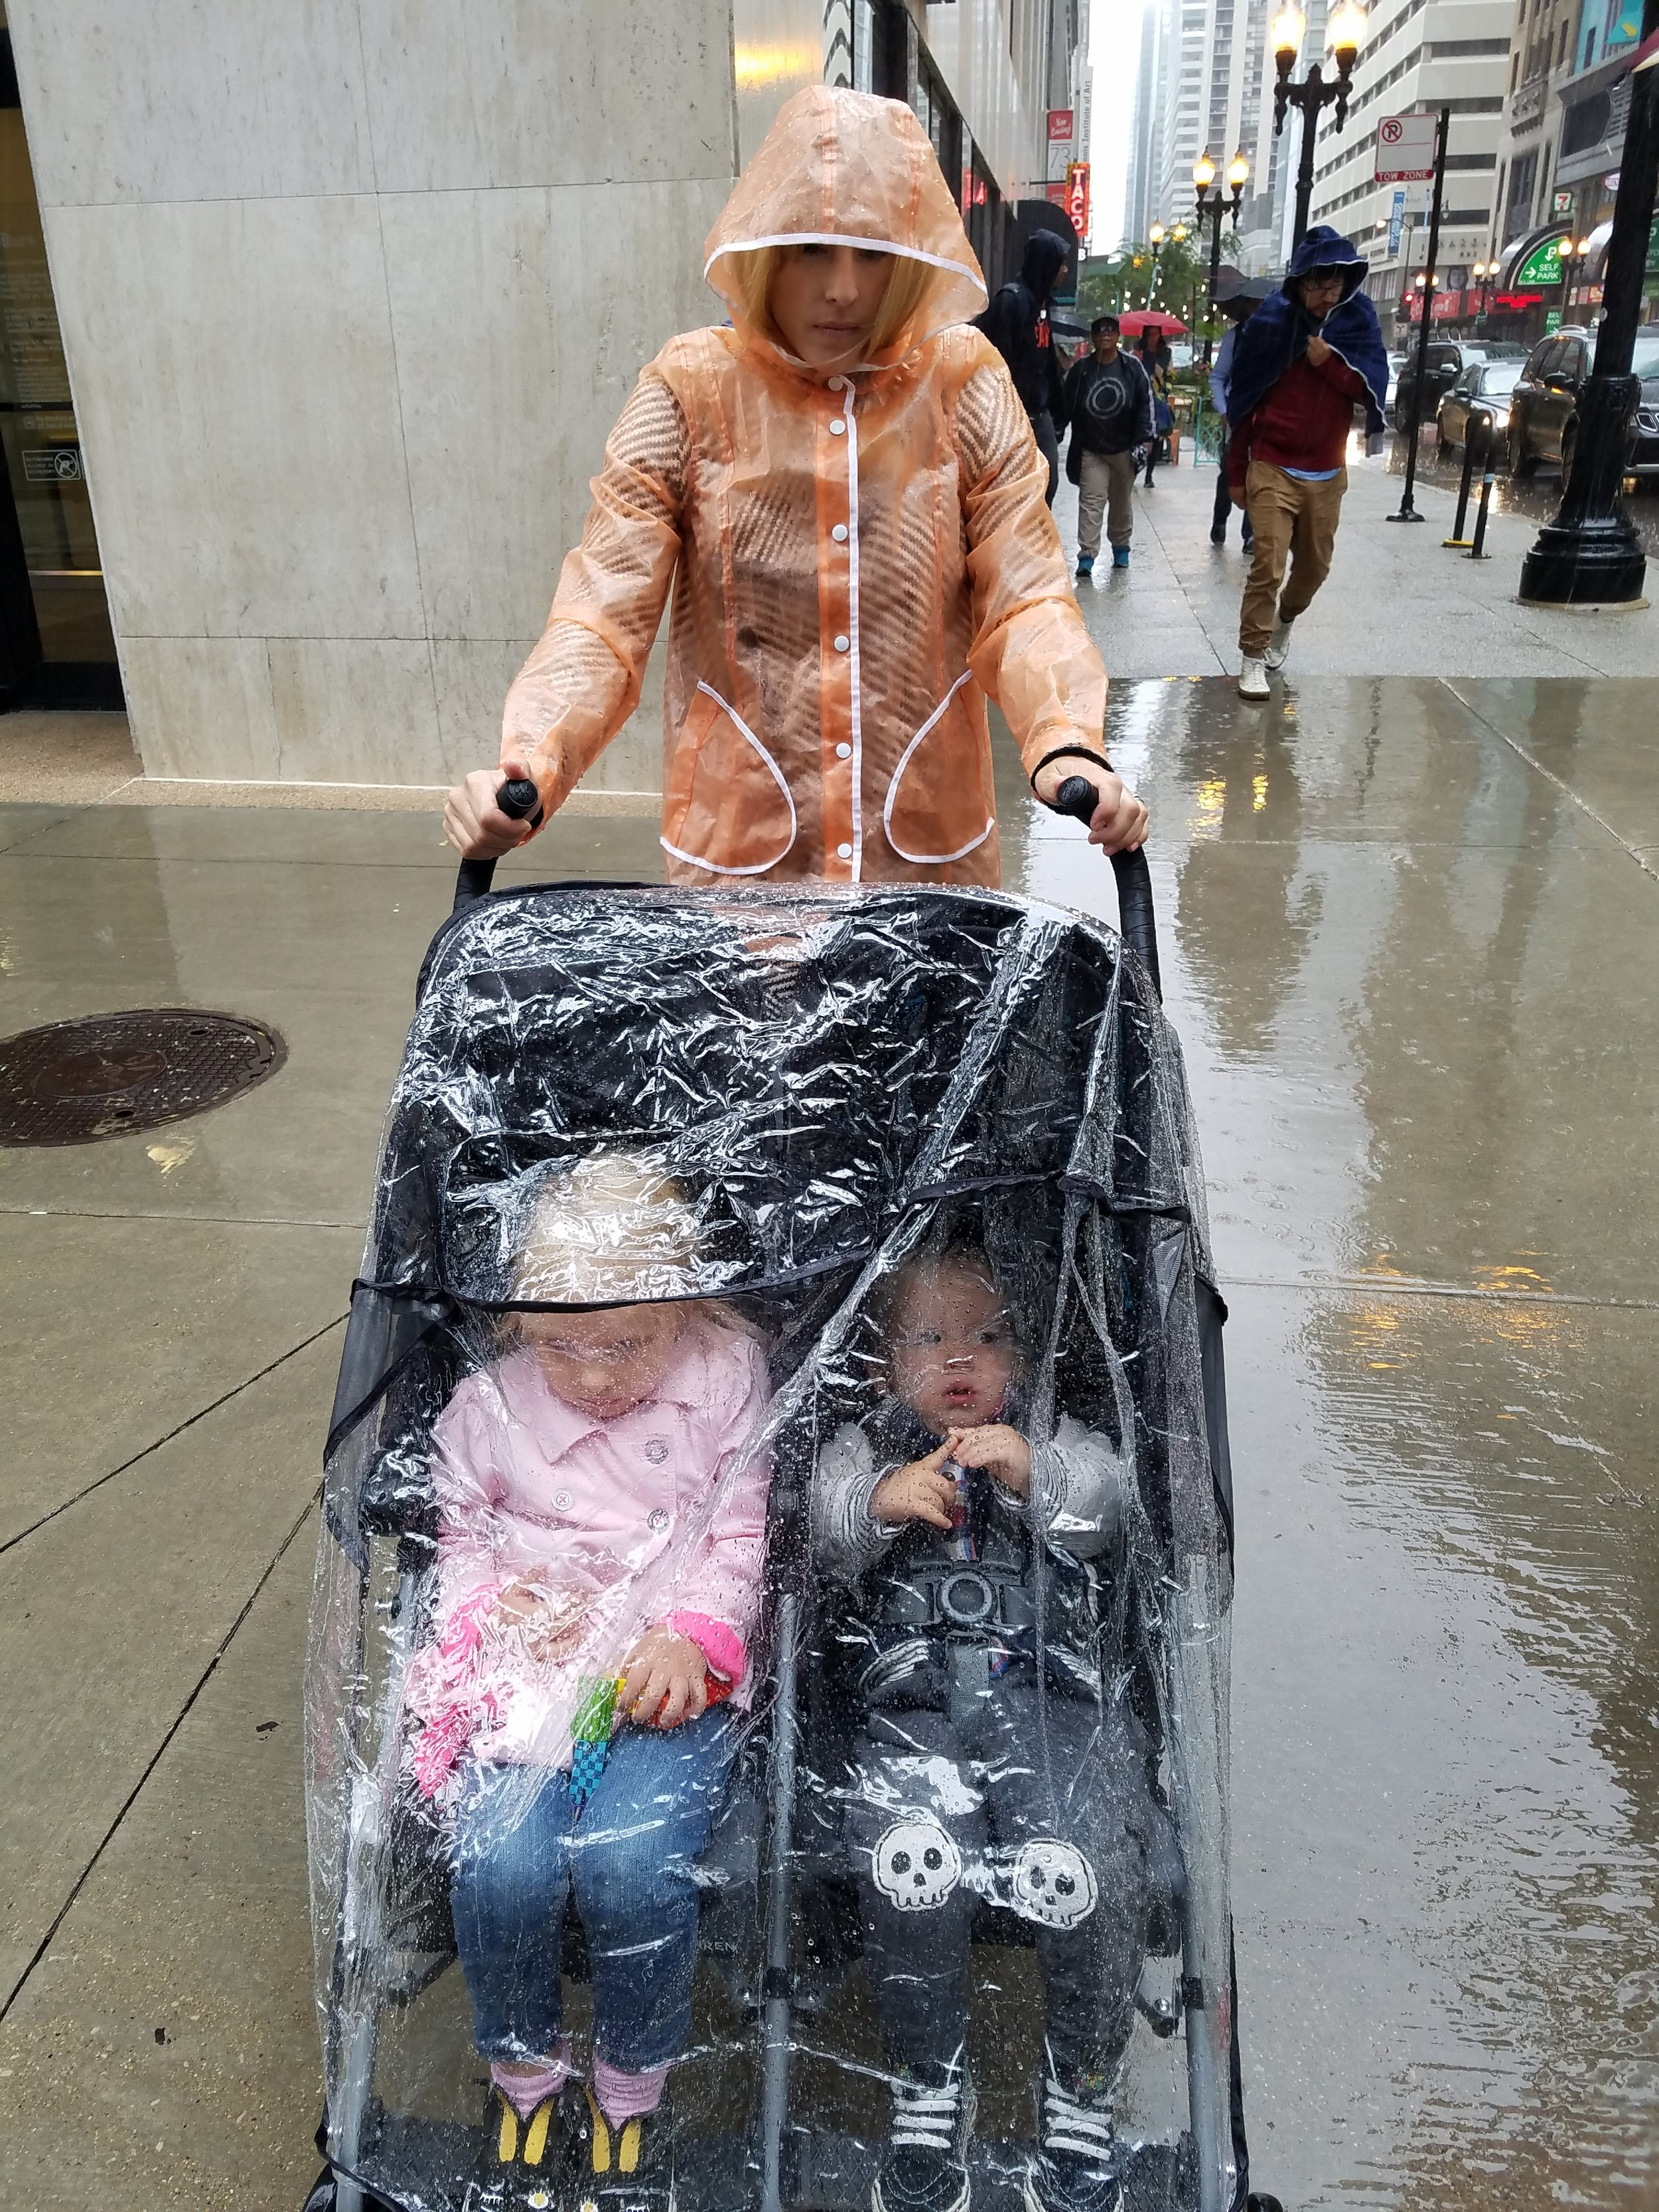 How we managed to stay dry, hands-free when it rained!